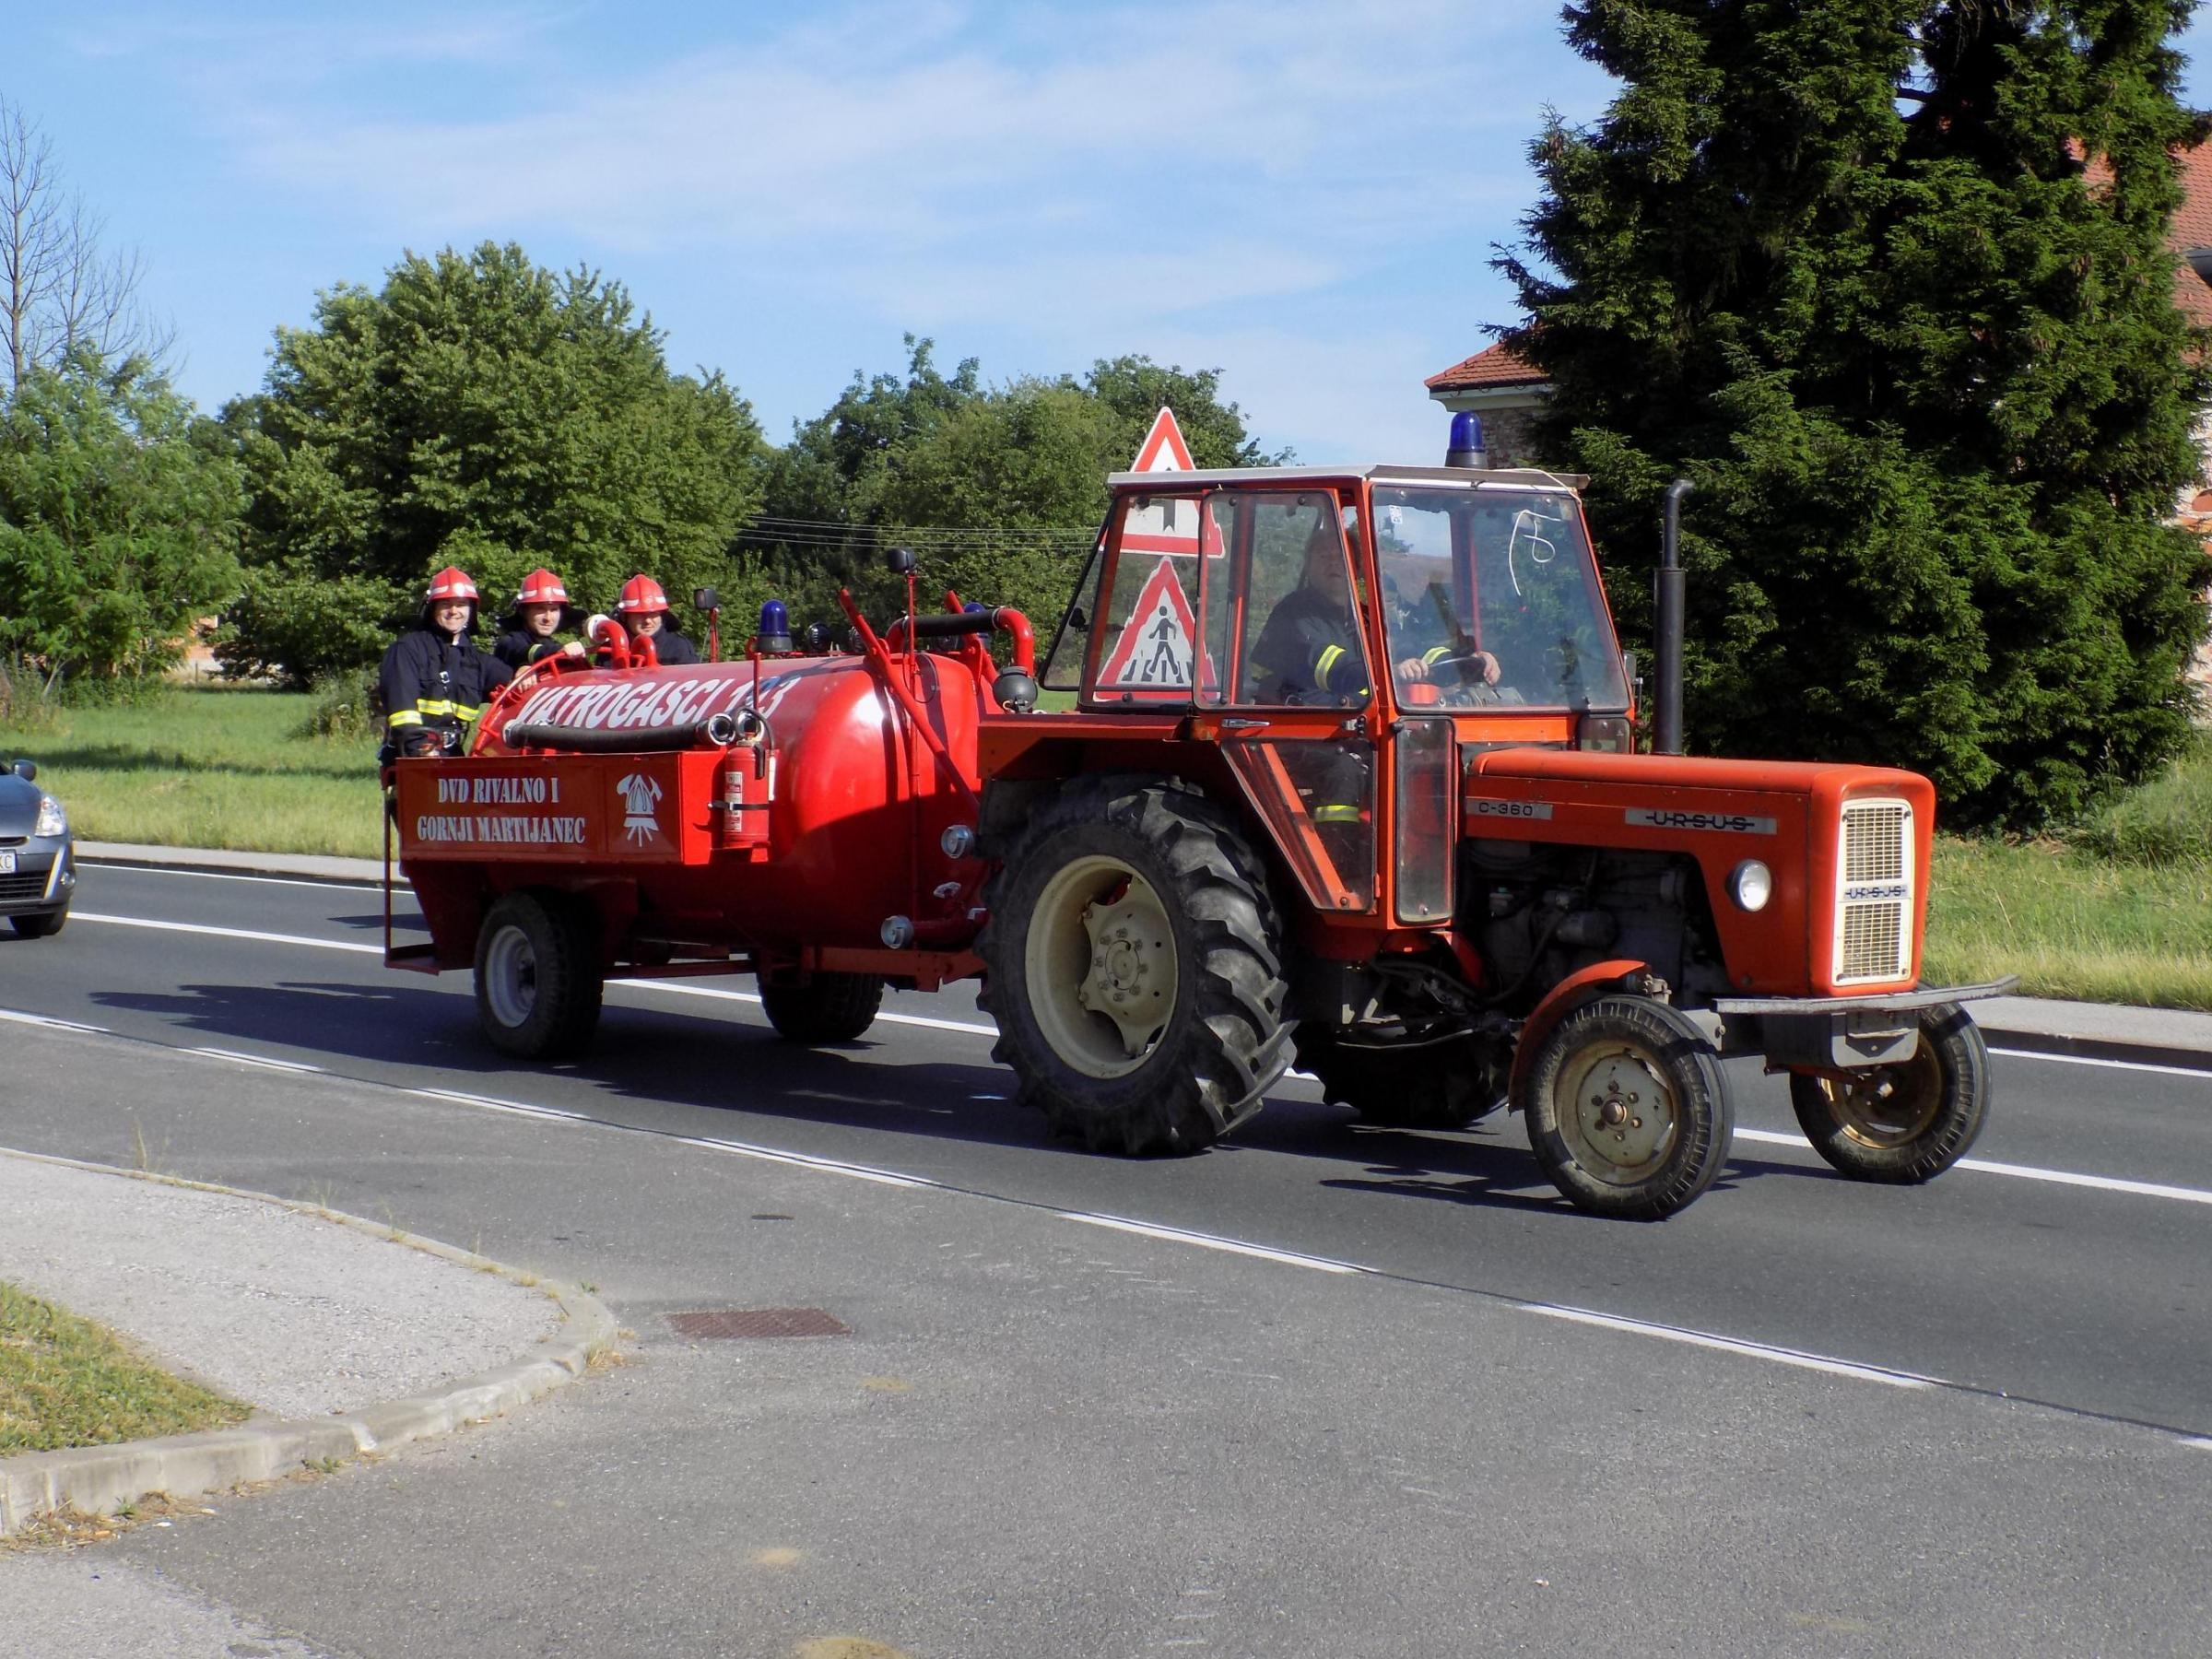 The fire engines will upgrade very basic firefighting capability in rural areas of Croatia.